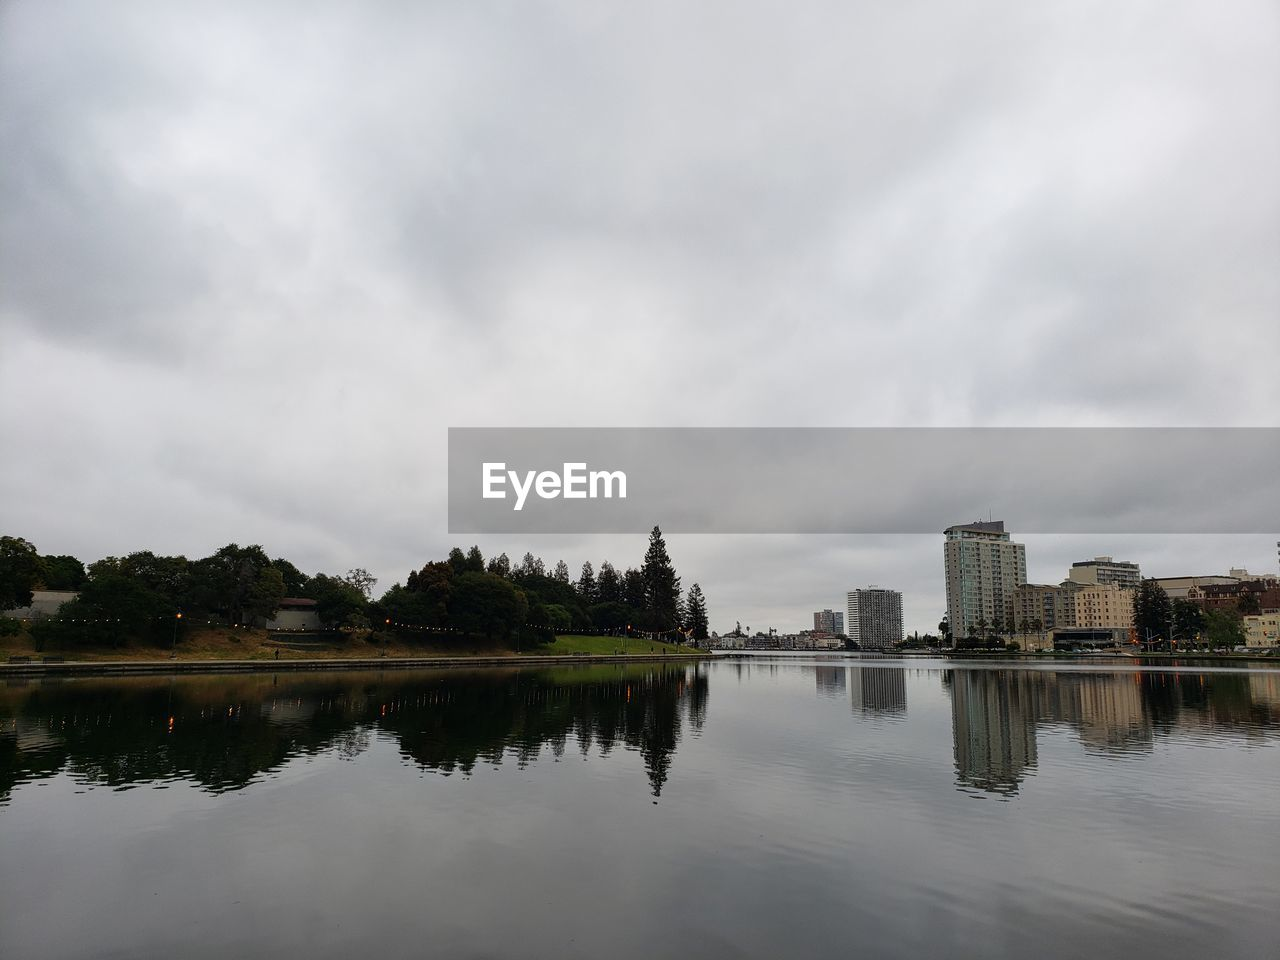 sky, architecture, cloud - sky, water, built structure, reflection, building exterior, waterfront, city, nature, lake, building, no people, tree, plant, outdoors, urban skyline, landscape, travel destinations, office building exterior, skyscraper